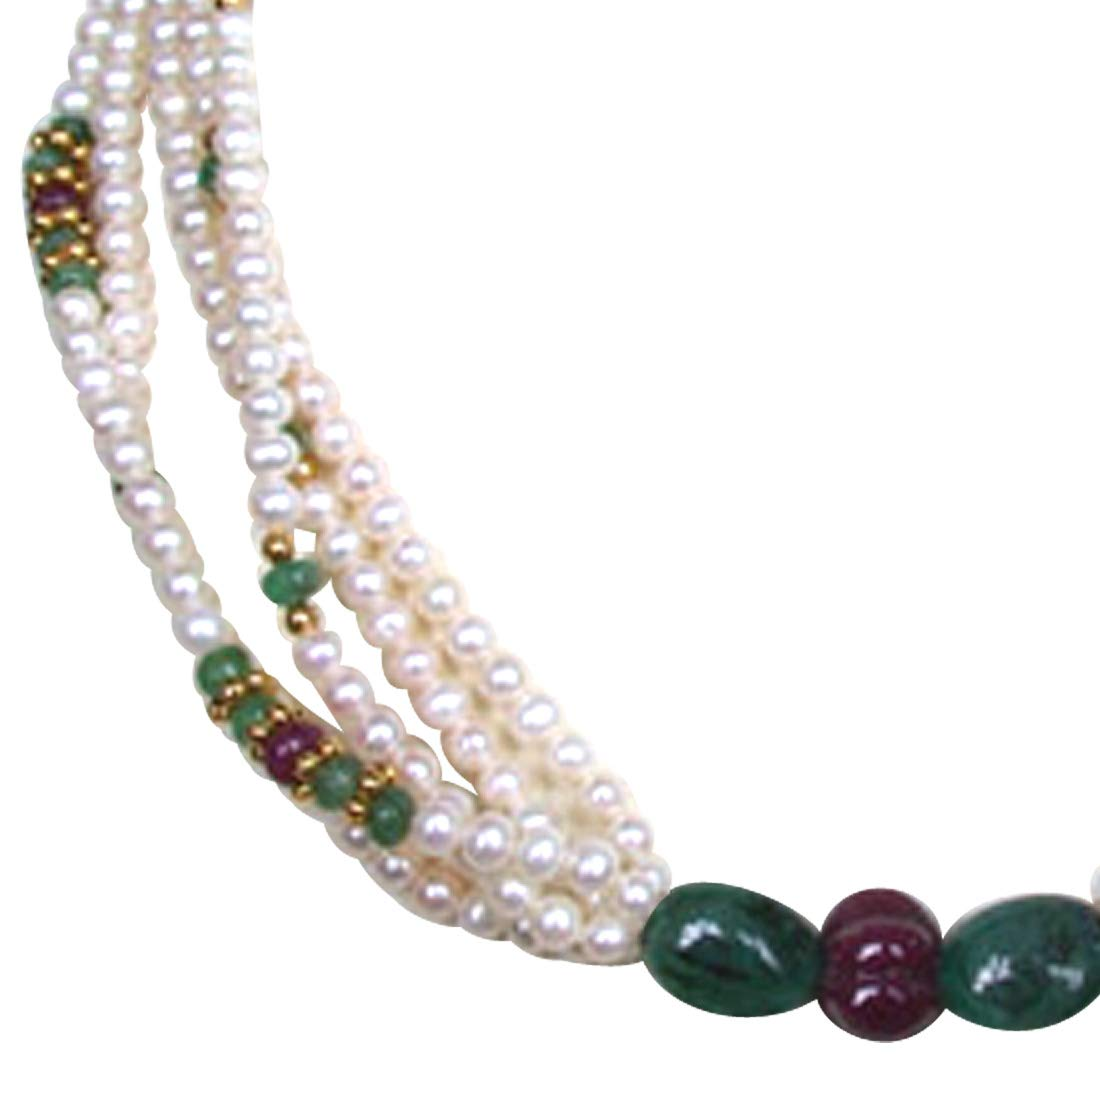 Pure Pristine Pleasure - Real Ruby, Emerald & Freshwater Pearl 5 Line Necklace for Women (SN220)